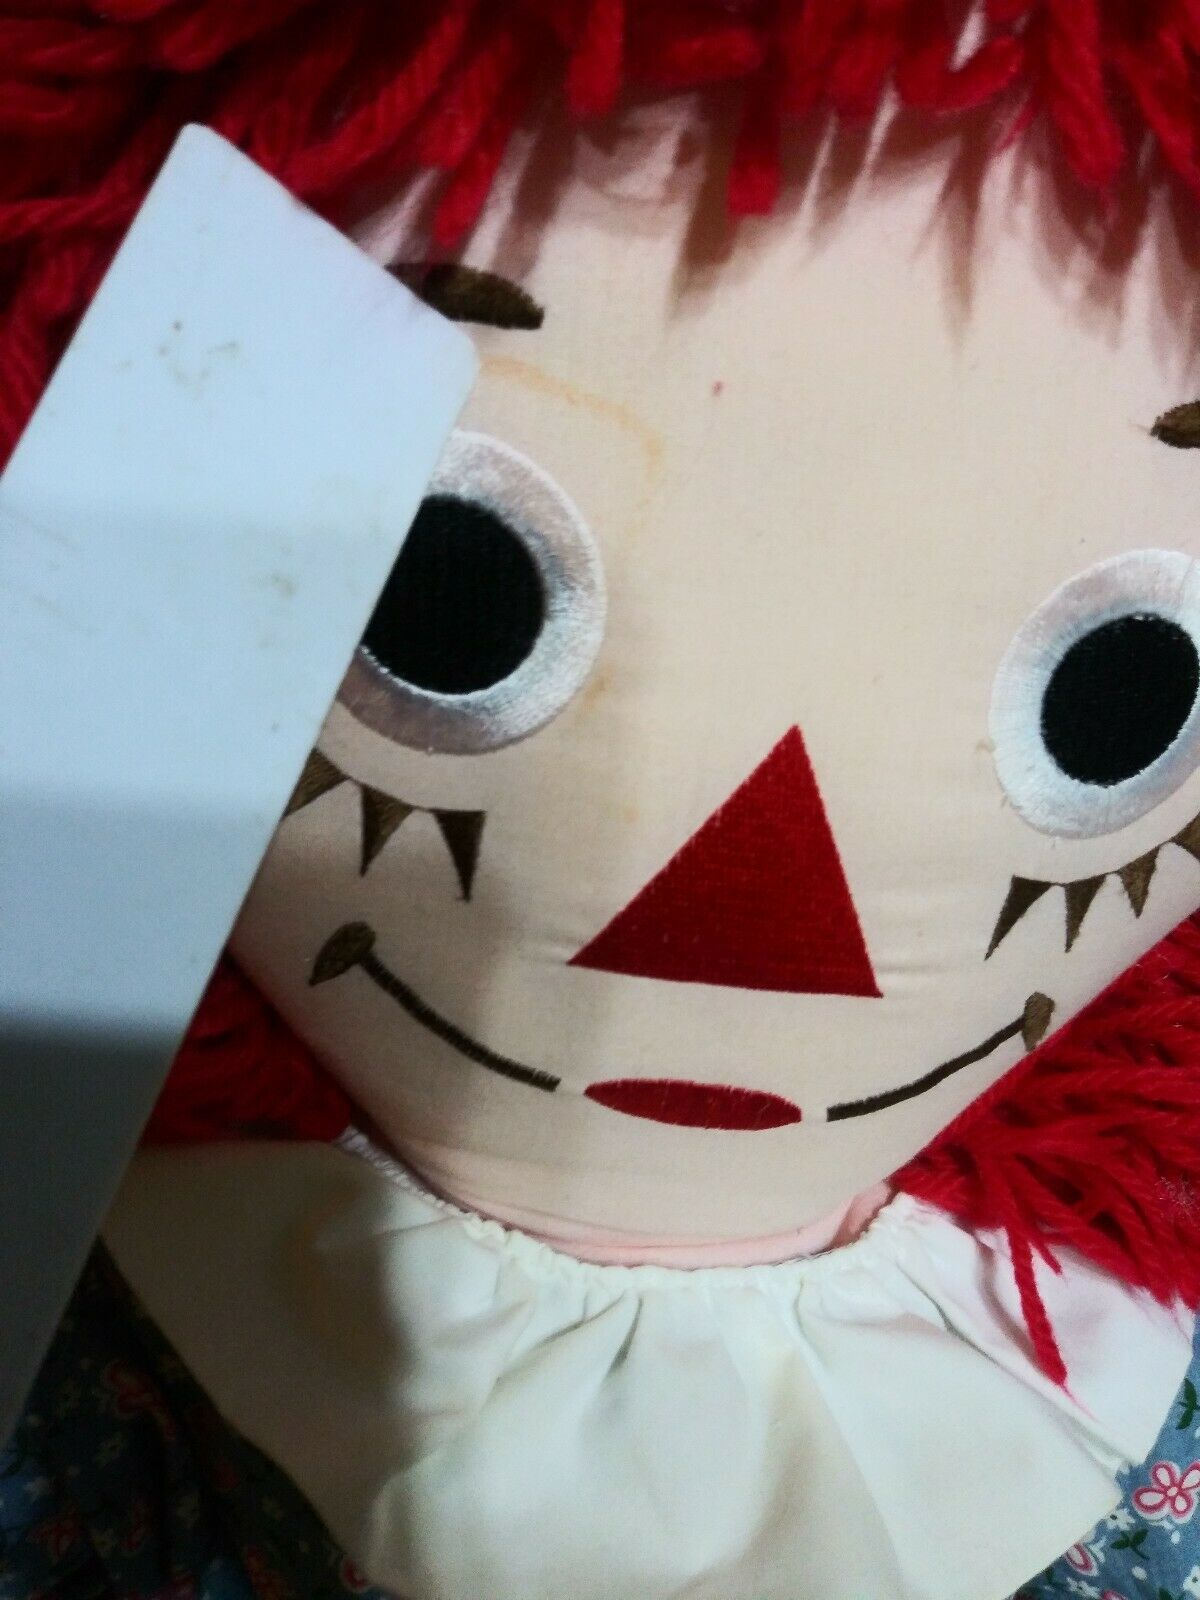 Vintage Raggedy Ann Doll 1991 3 Feet Tall Authentic Johnny Gruelle by Applause